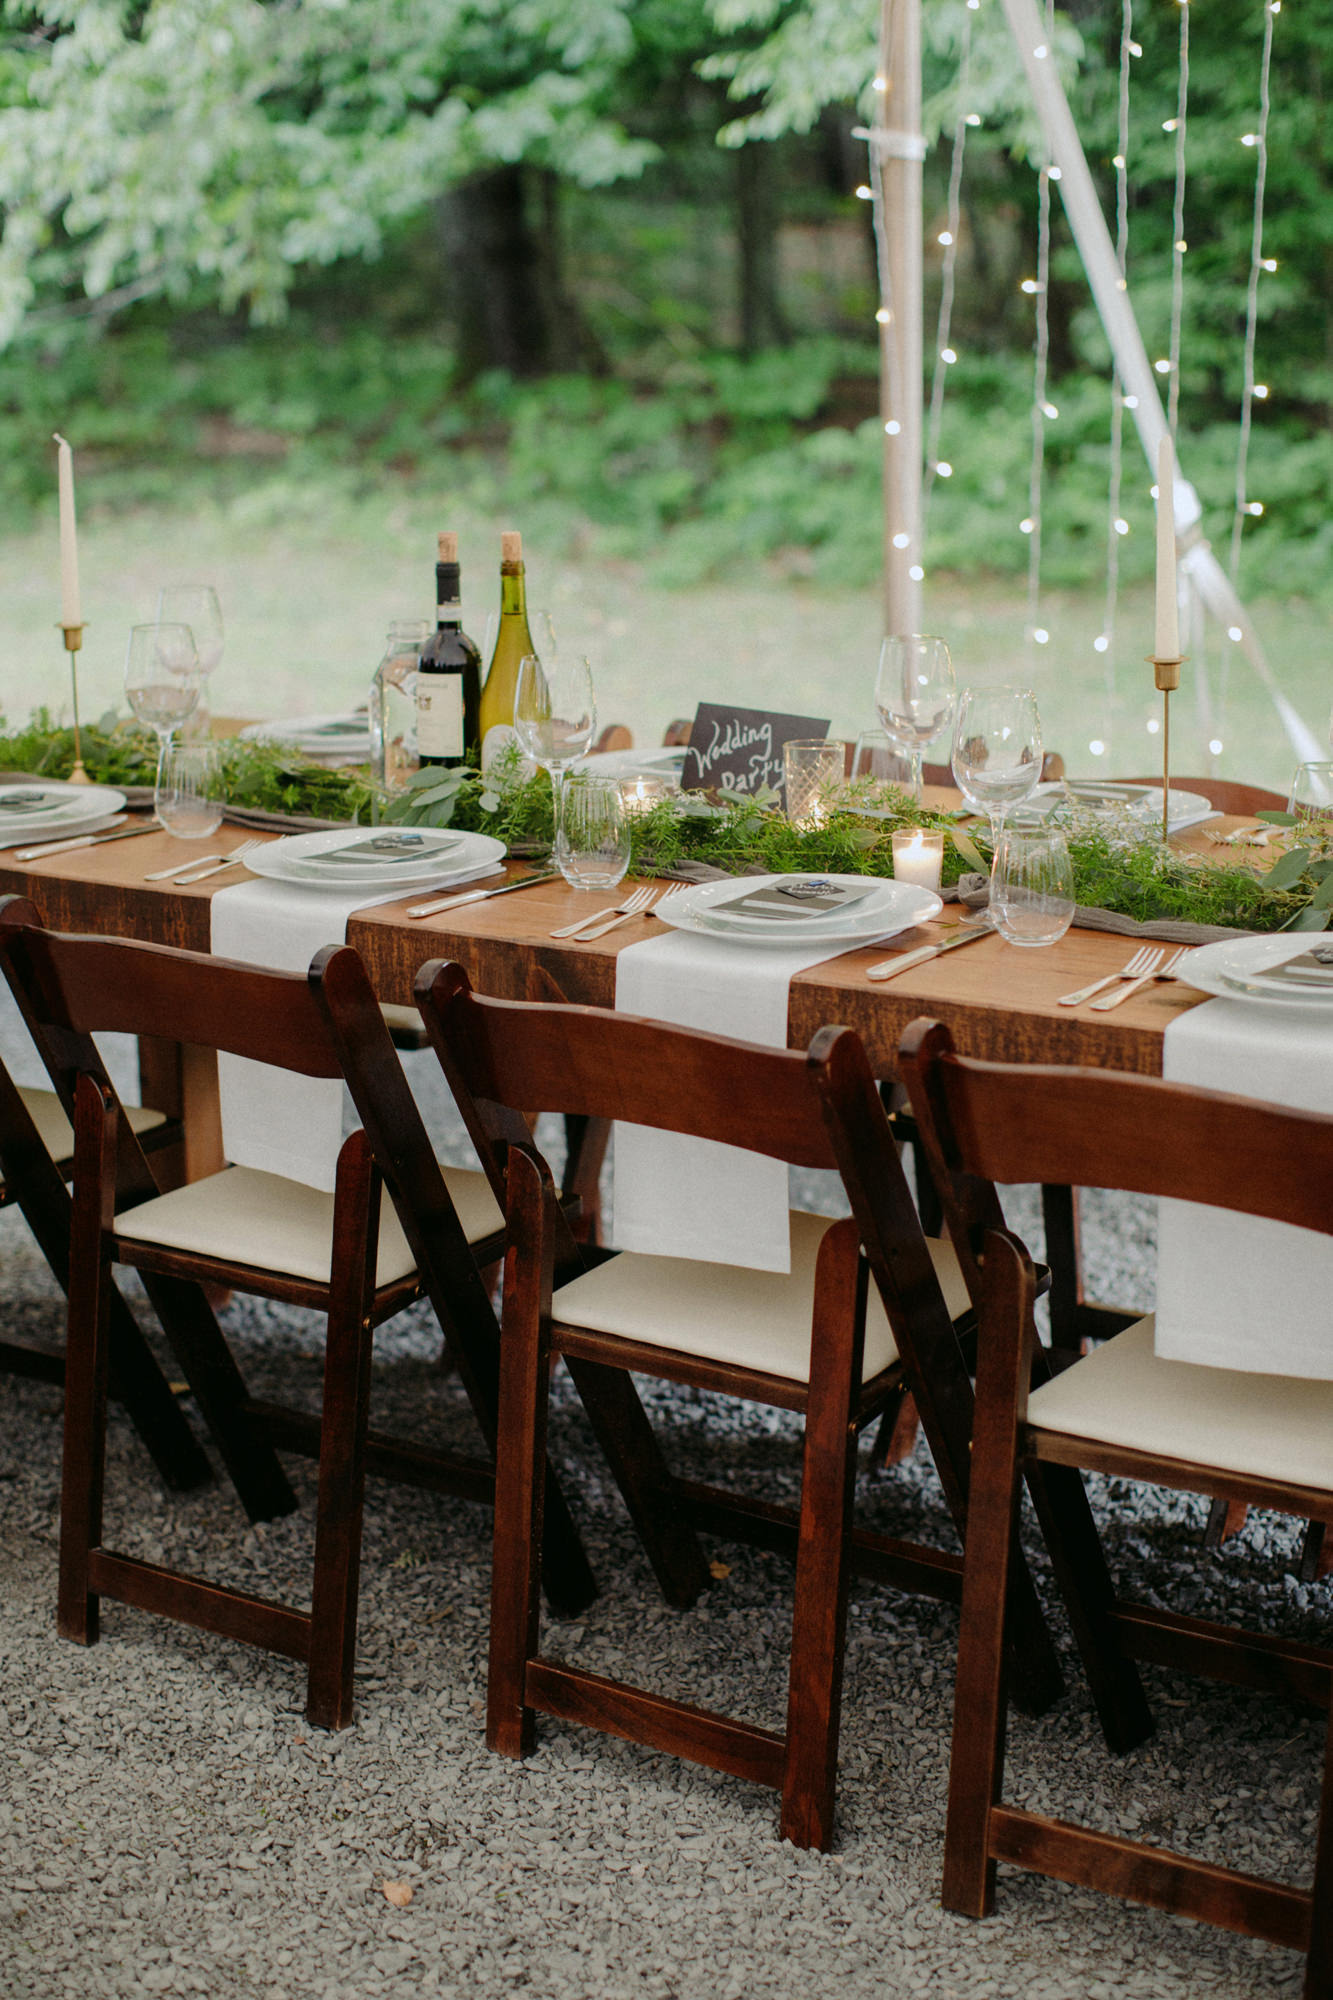 FOXFIREMOUNTAINHOUSE_CATSKILLS_WEDDING_SAMMBLAKE_PJW_0392.jpg